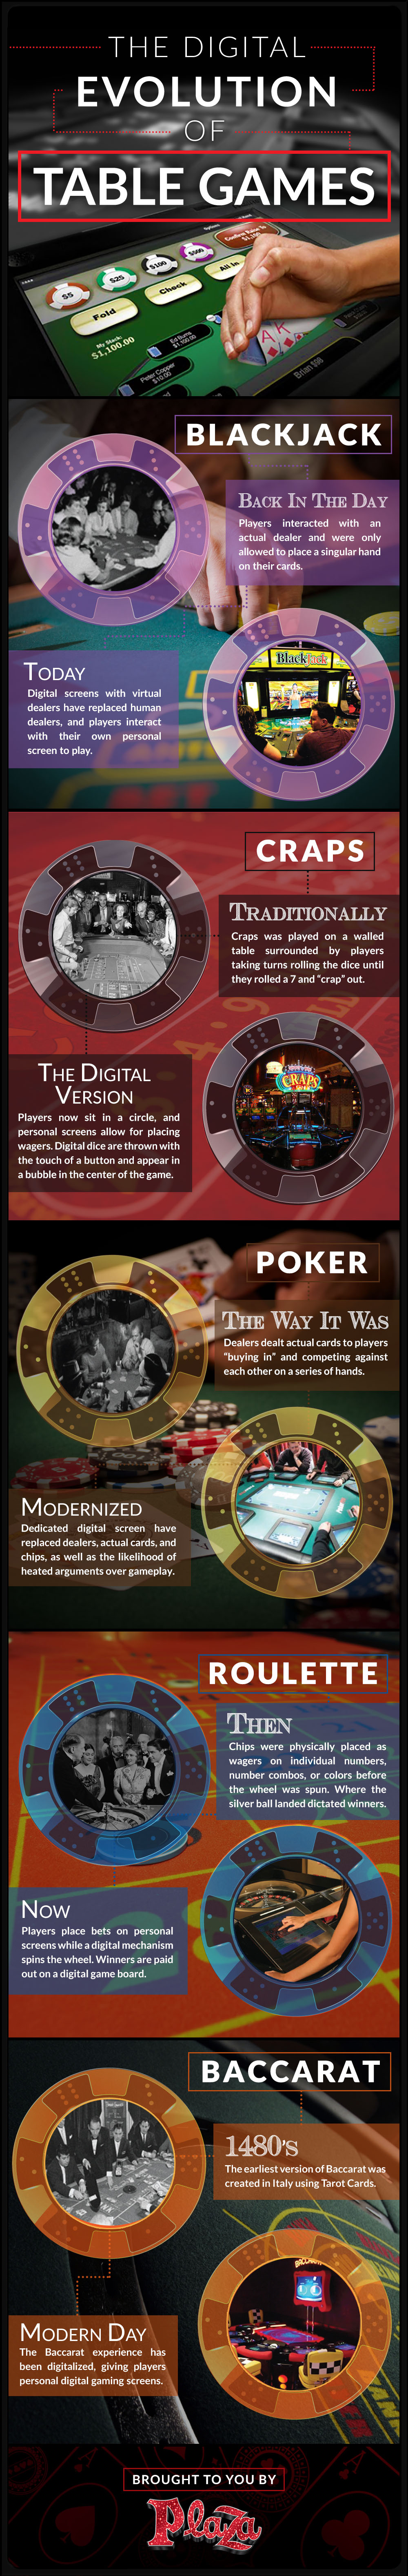 the evolution of digital gaming infographic